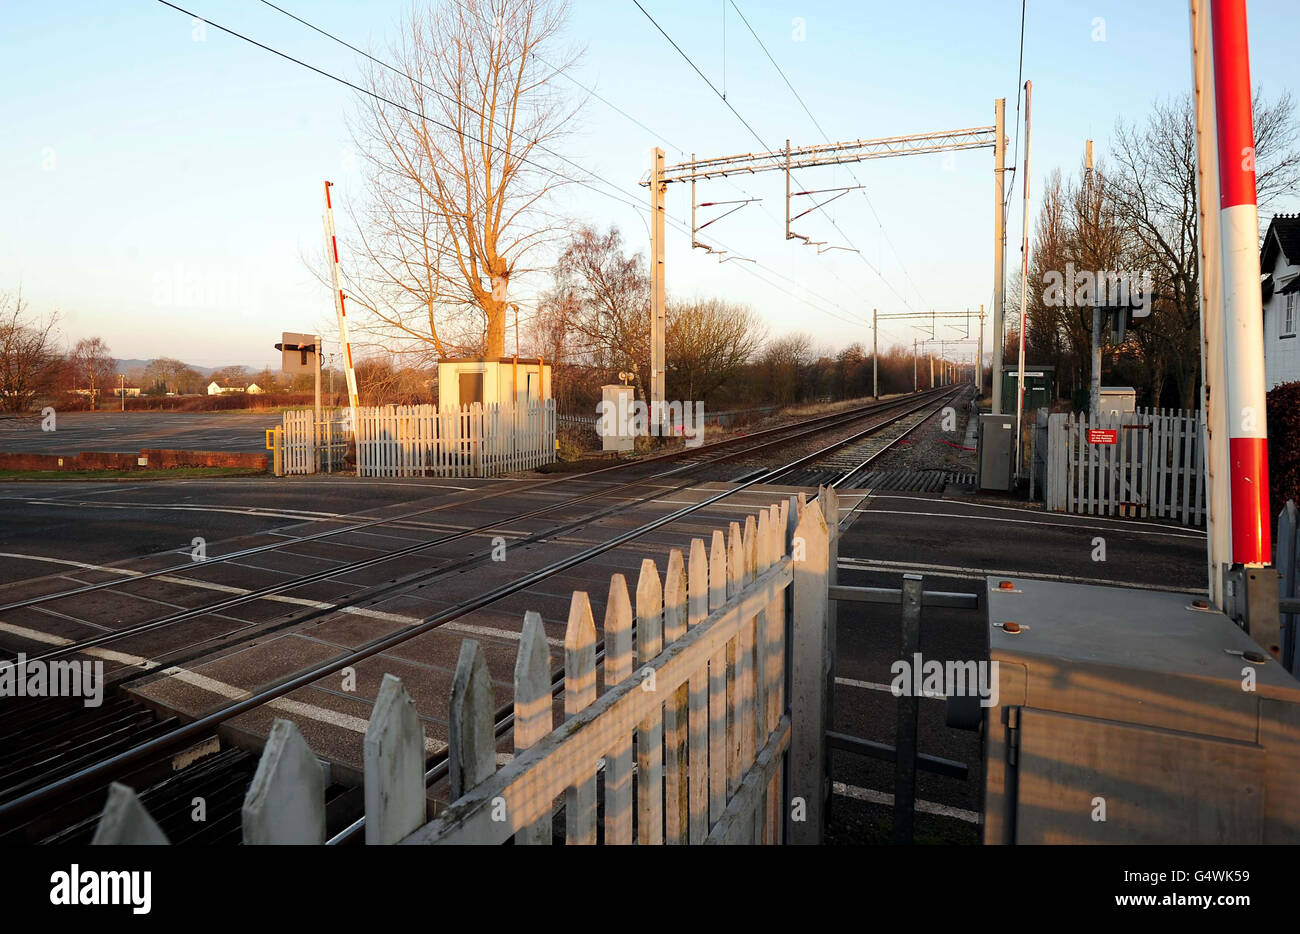 Man killed by train at crossing - Stock Image